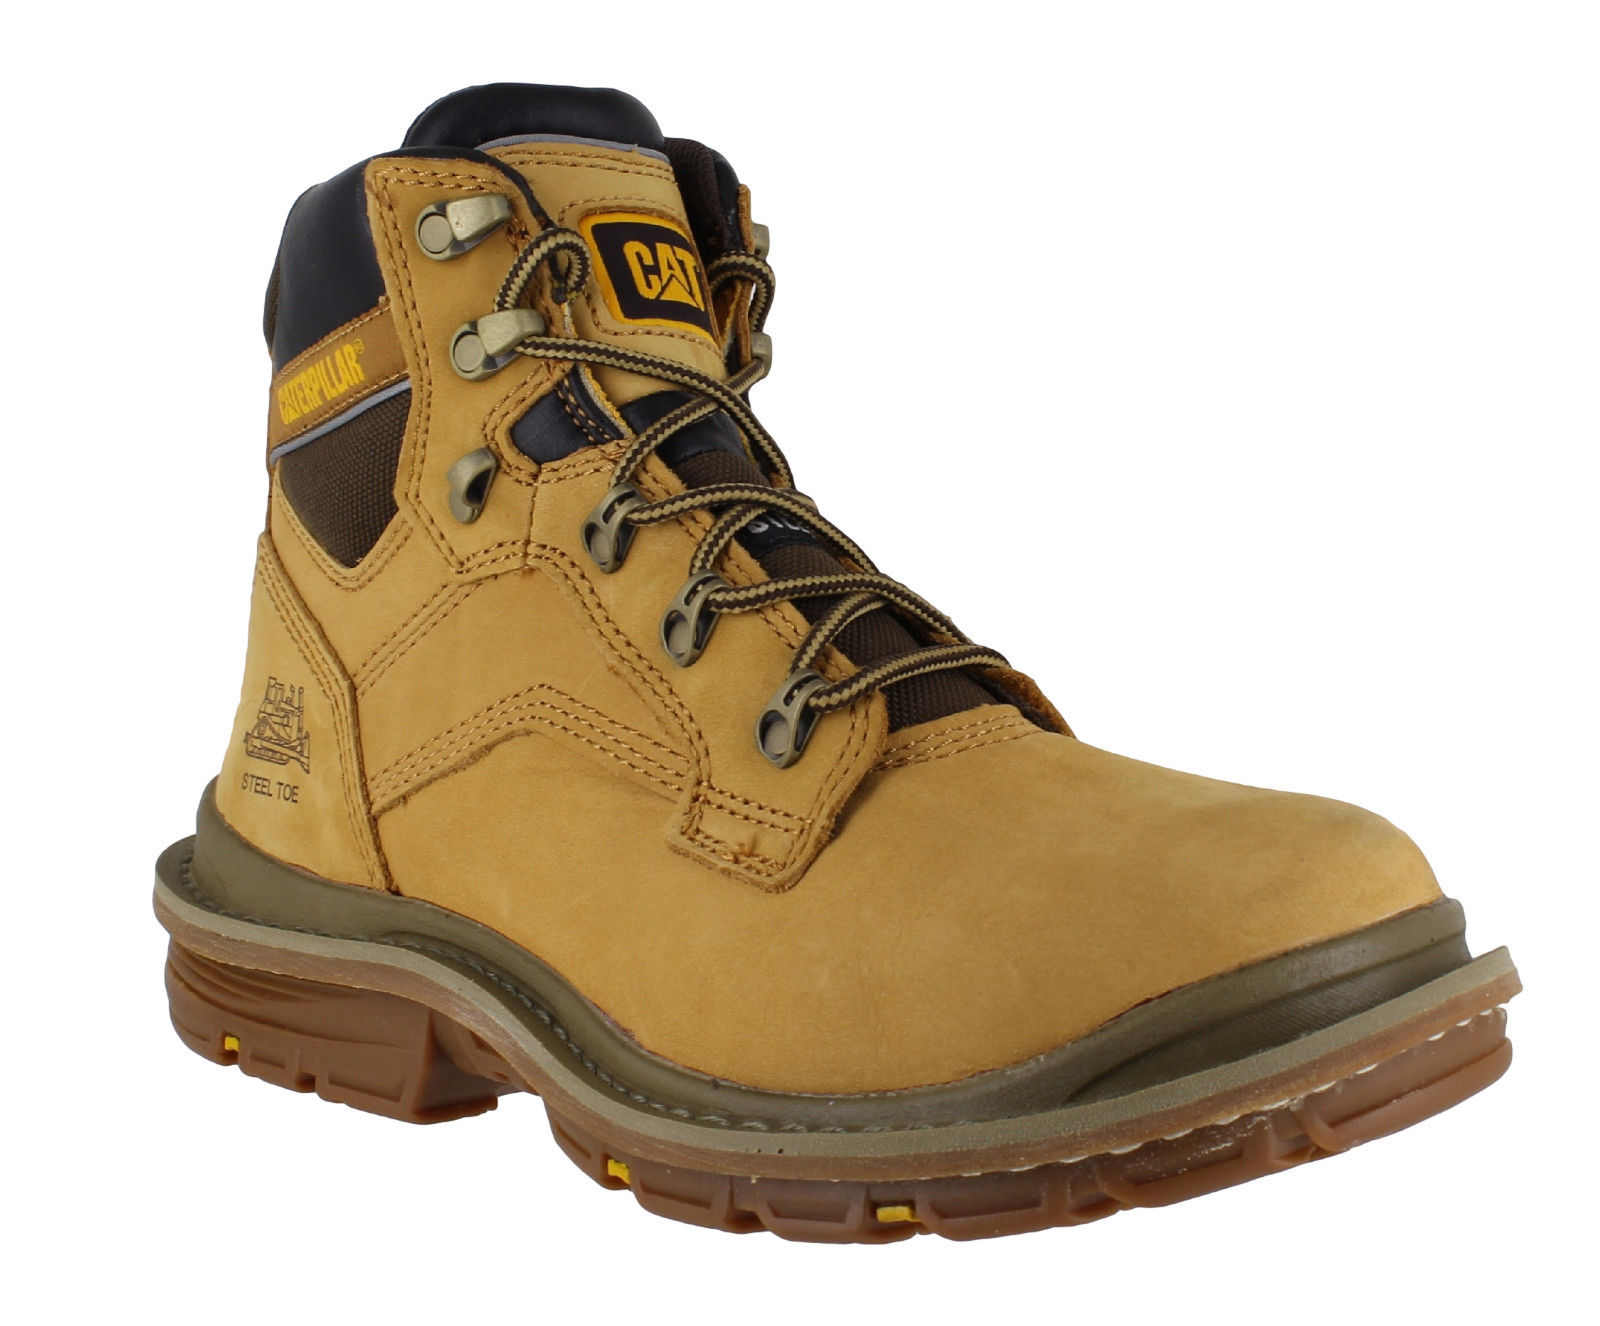 Work Boots Uk Safety Antistatic Shoes